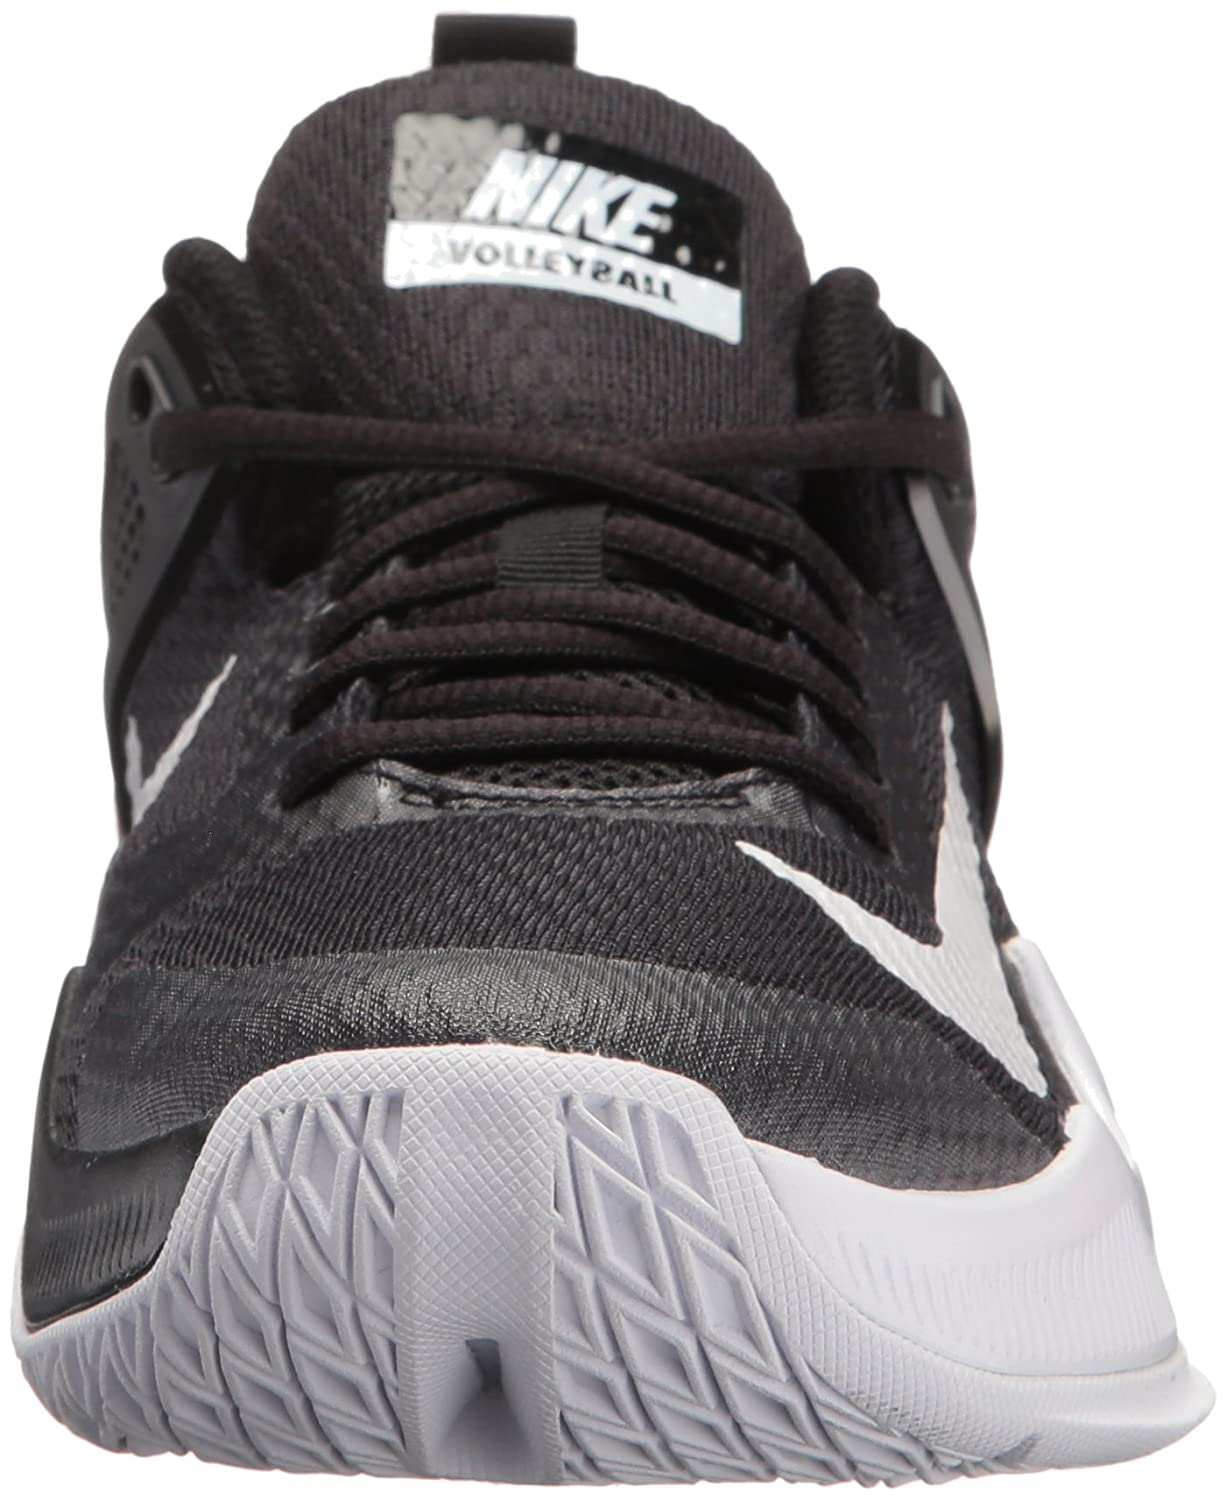 a11f5d6fff8fed Item specifics Source · NIKE Women s Air Zoom Hyperace Volleyball Shoes  B01LPST64Q B M 5 B